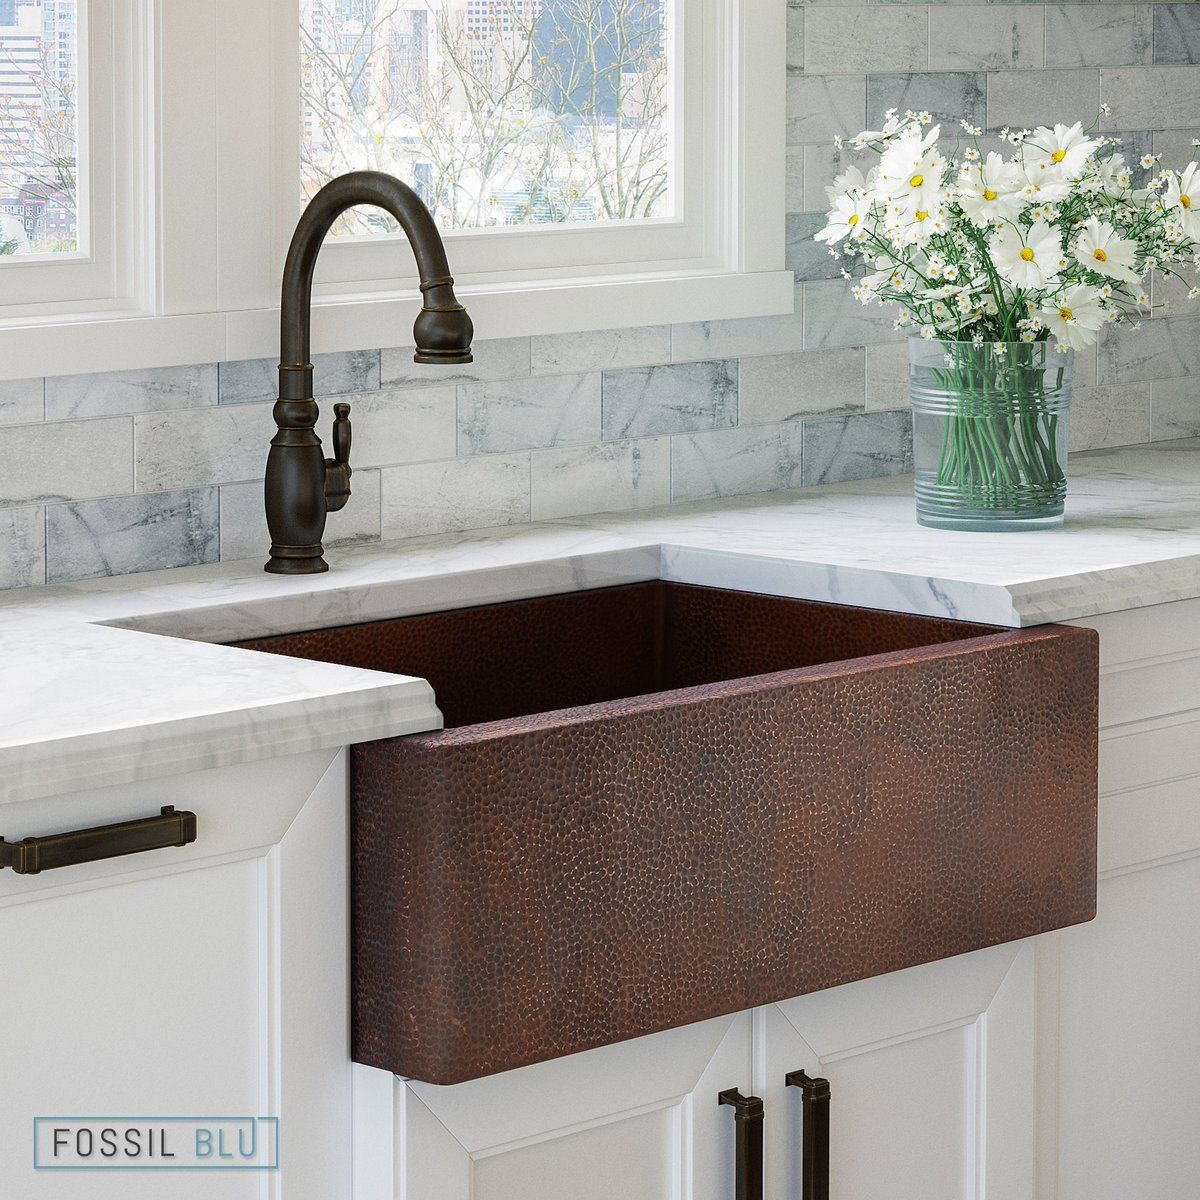 Fsw1100 Luxury 33 Inch Pure Hammered Copper Farmhouse Kitchen Sink Single Bowl With Flat Front Farmhouse Sink Kitchen Copper Farmhouse Sinks Modern Farmhouse Kitchens